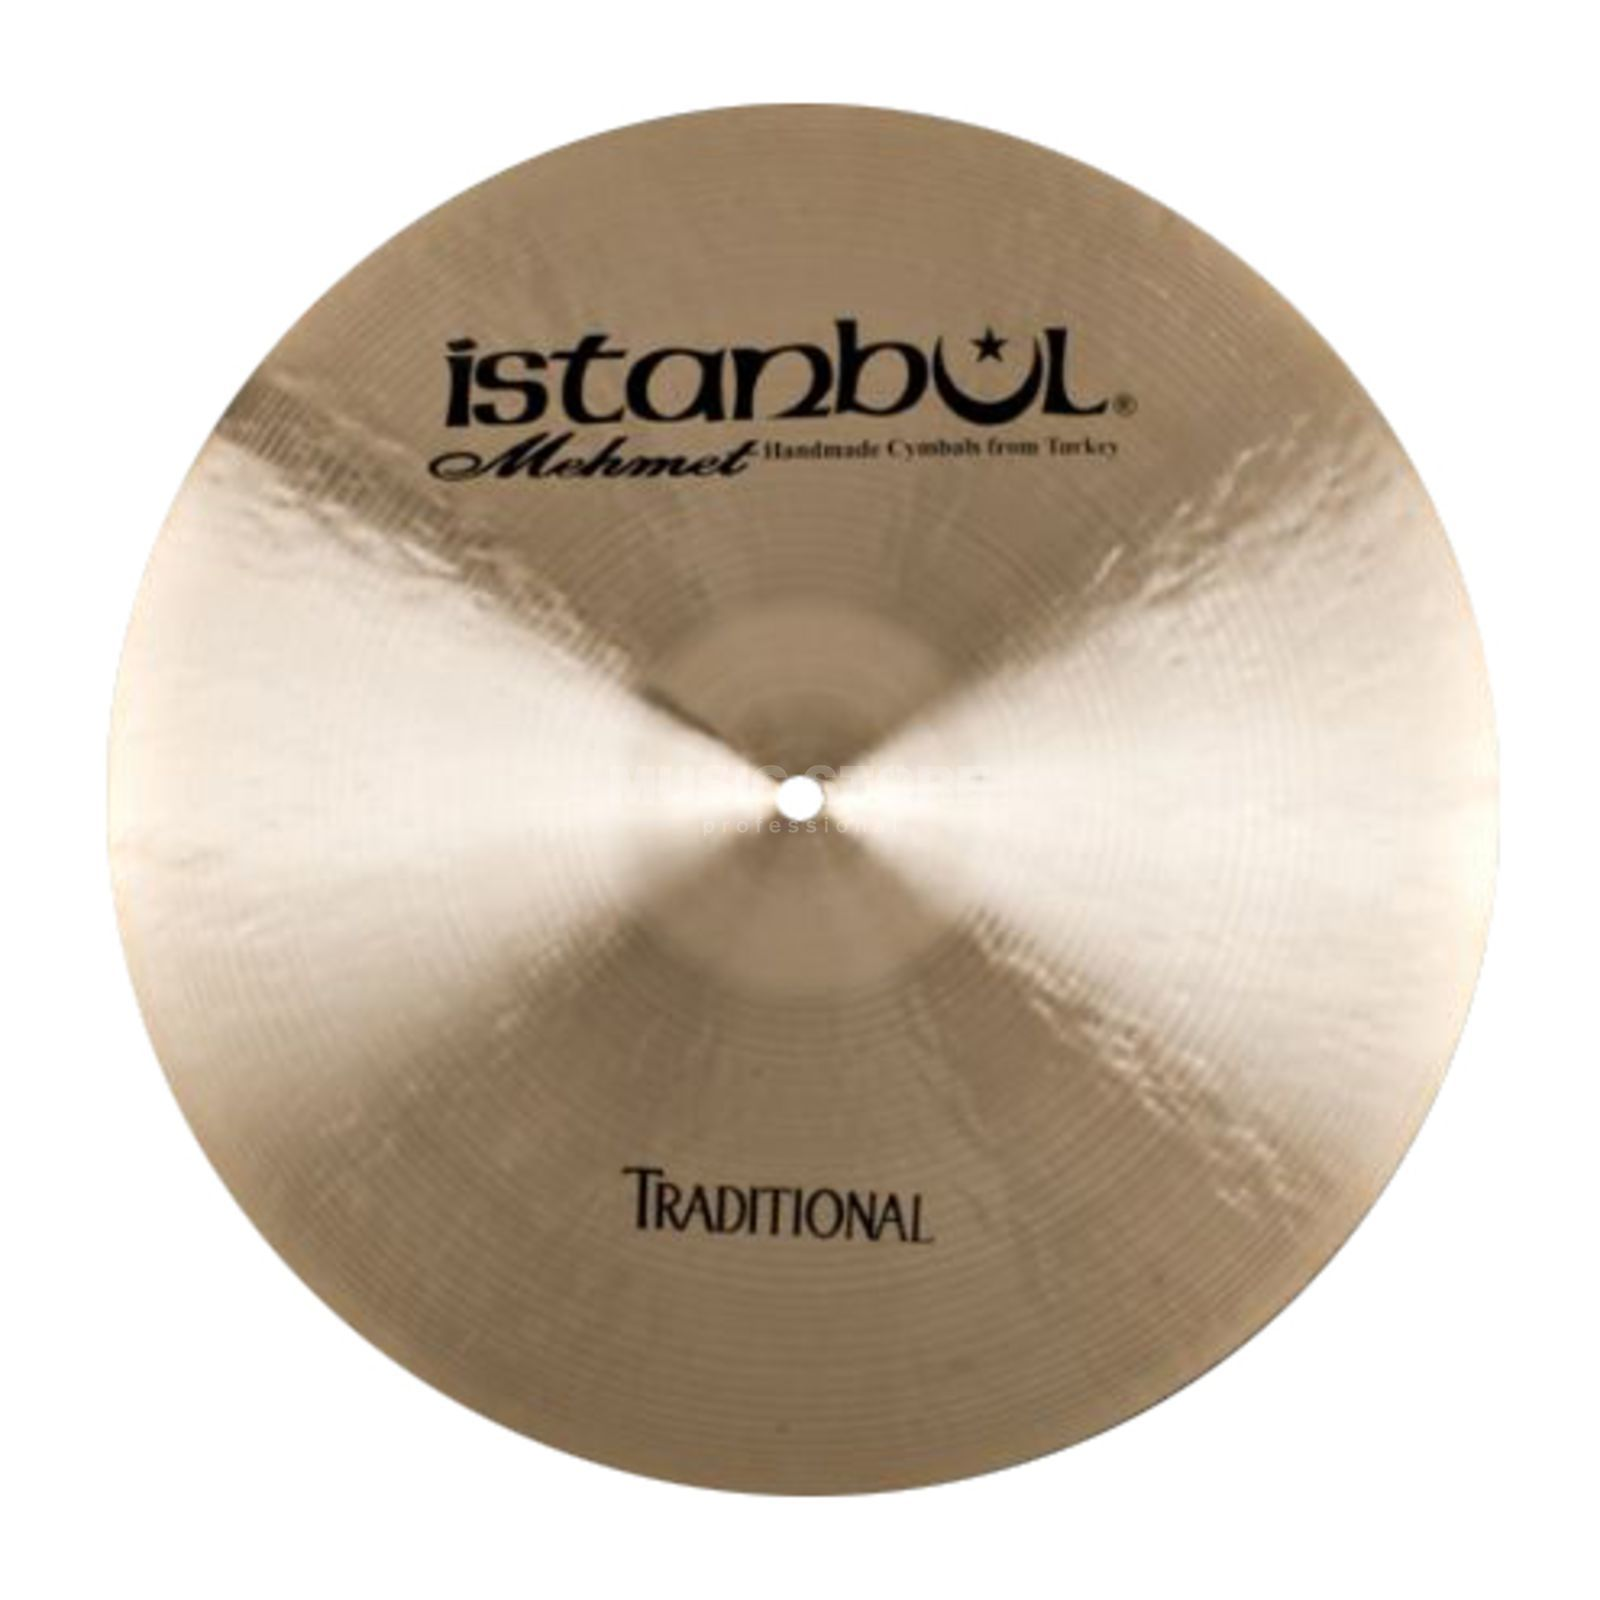 "Istanbul Traditional Dark Crash 19"", CD19 Produktbild"